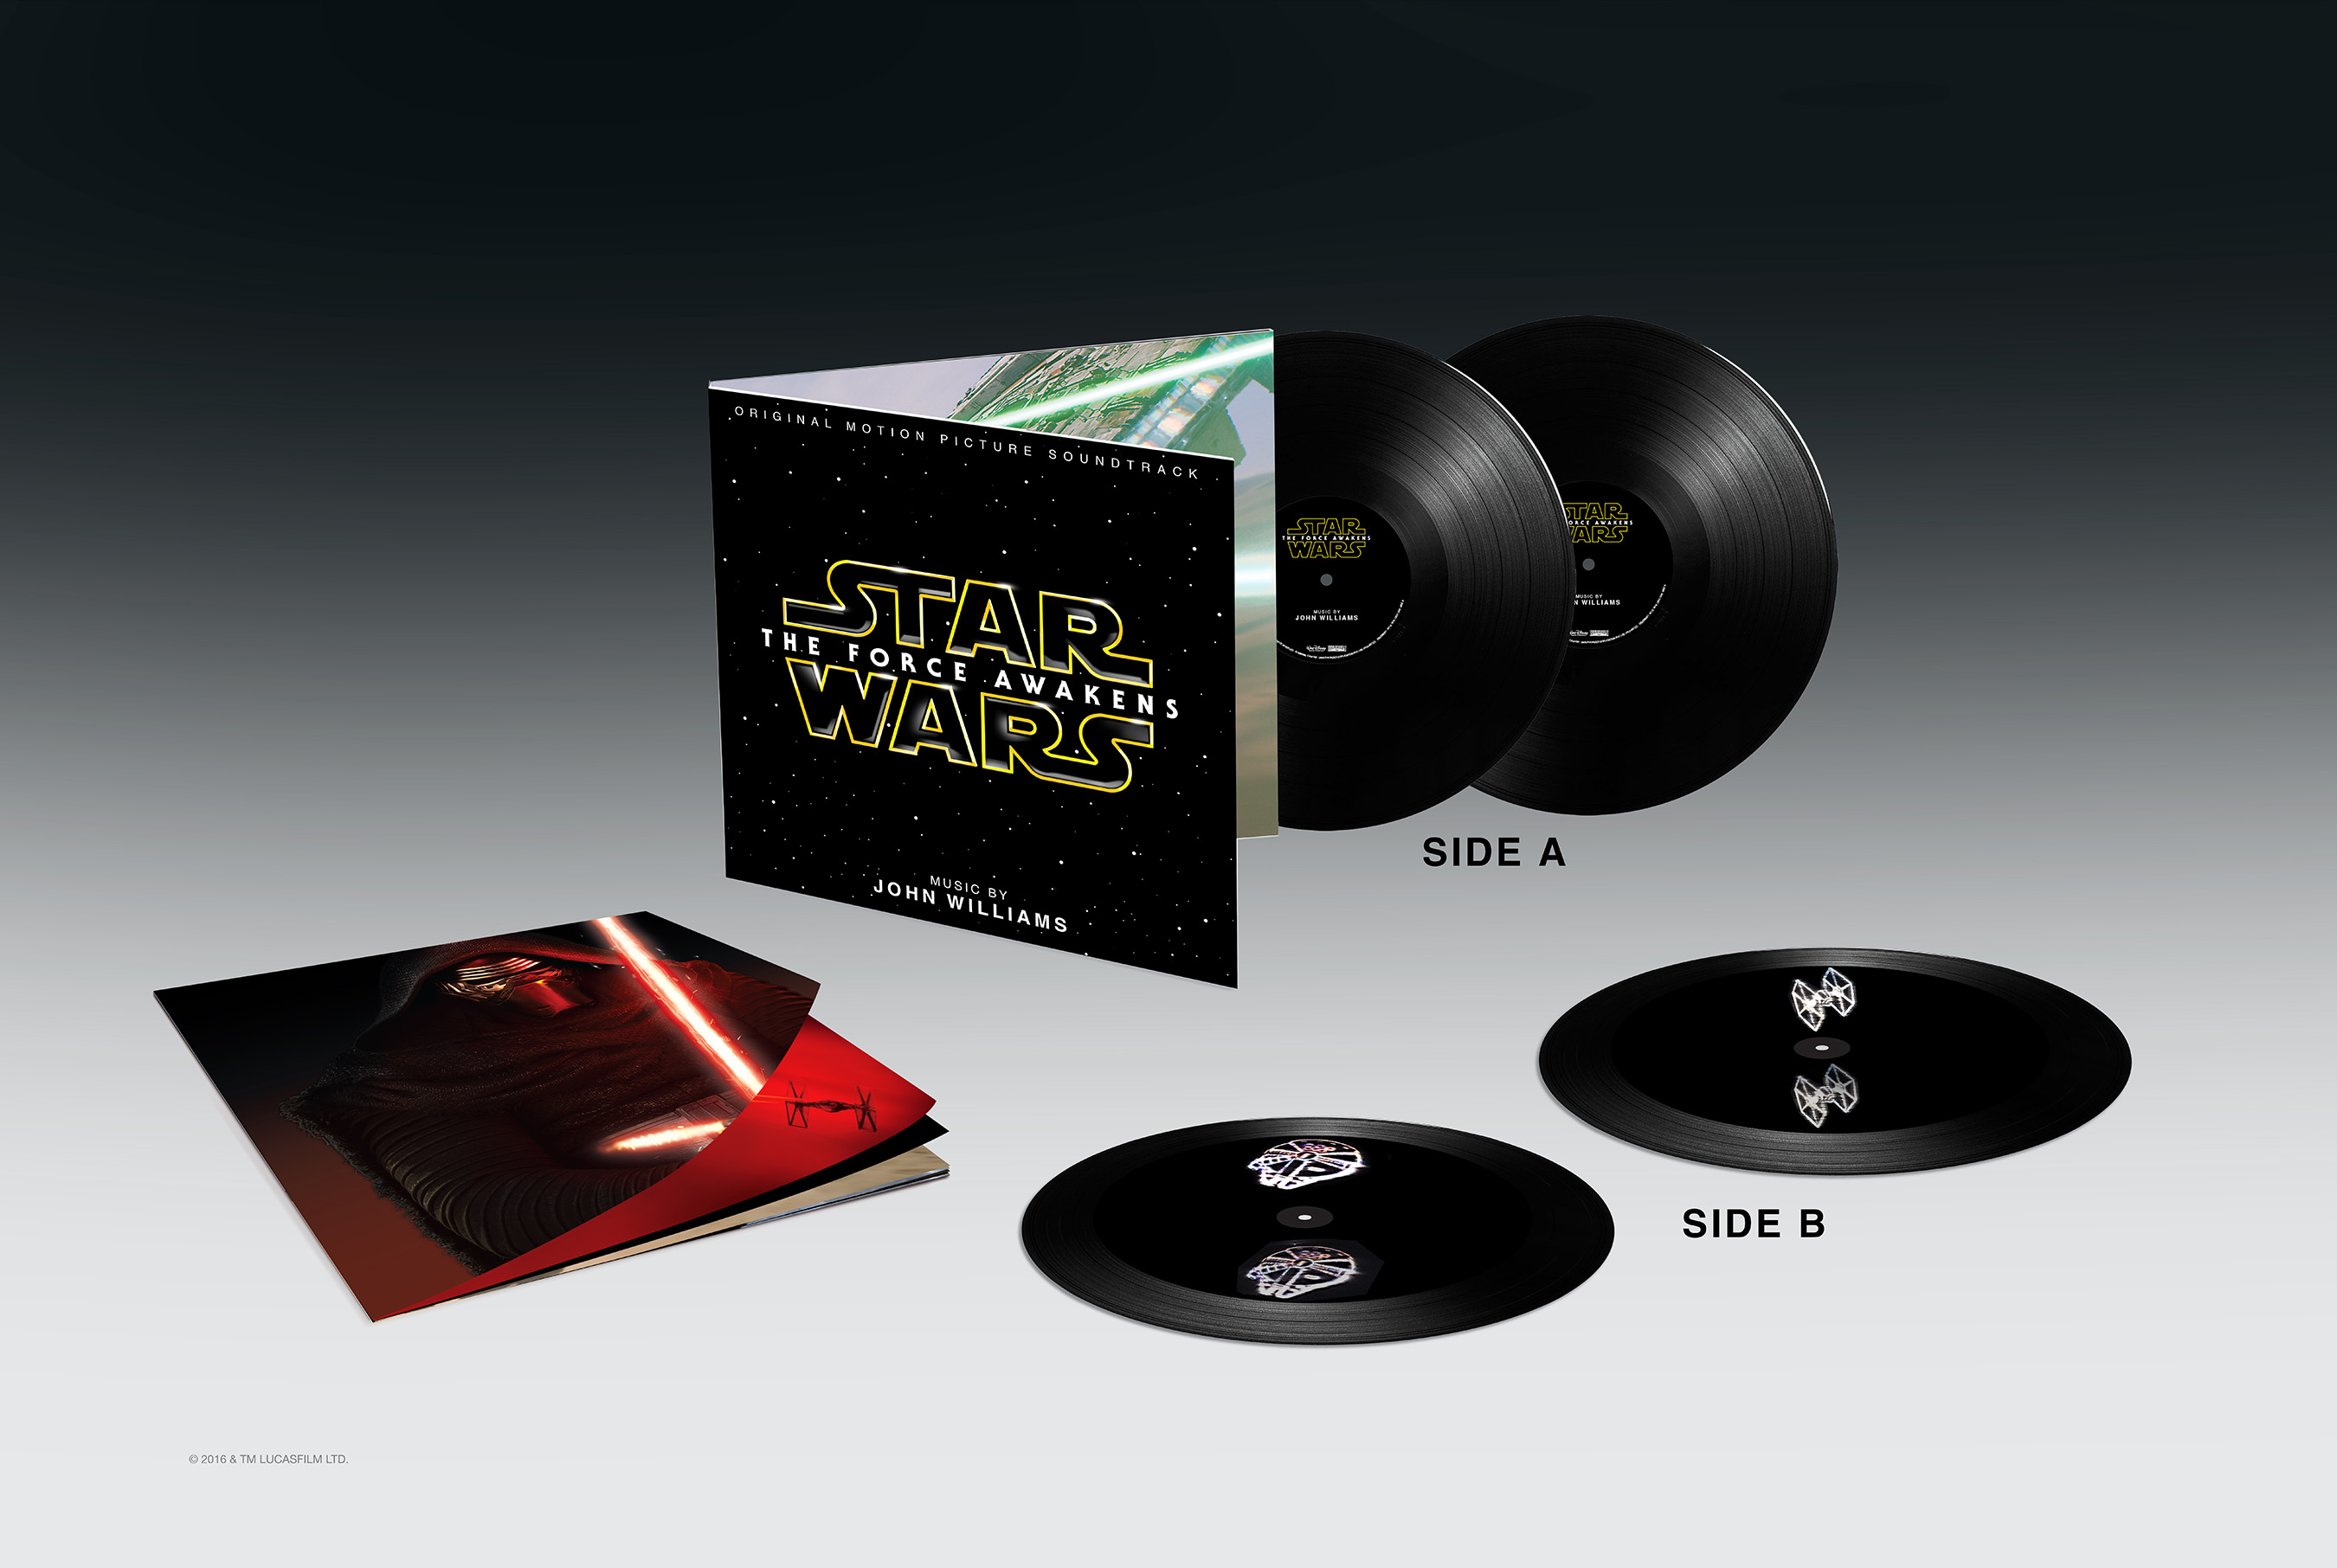 Star Wars: The Force Awakens Soundtrack 2 LP Hologram Vinyl without title